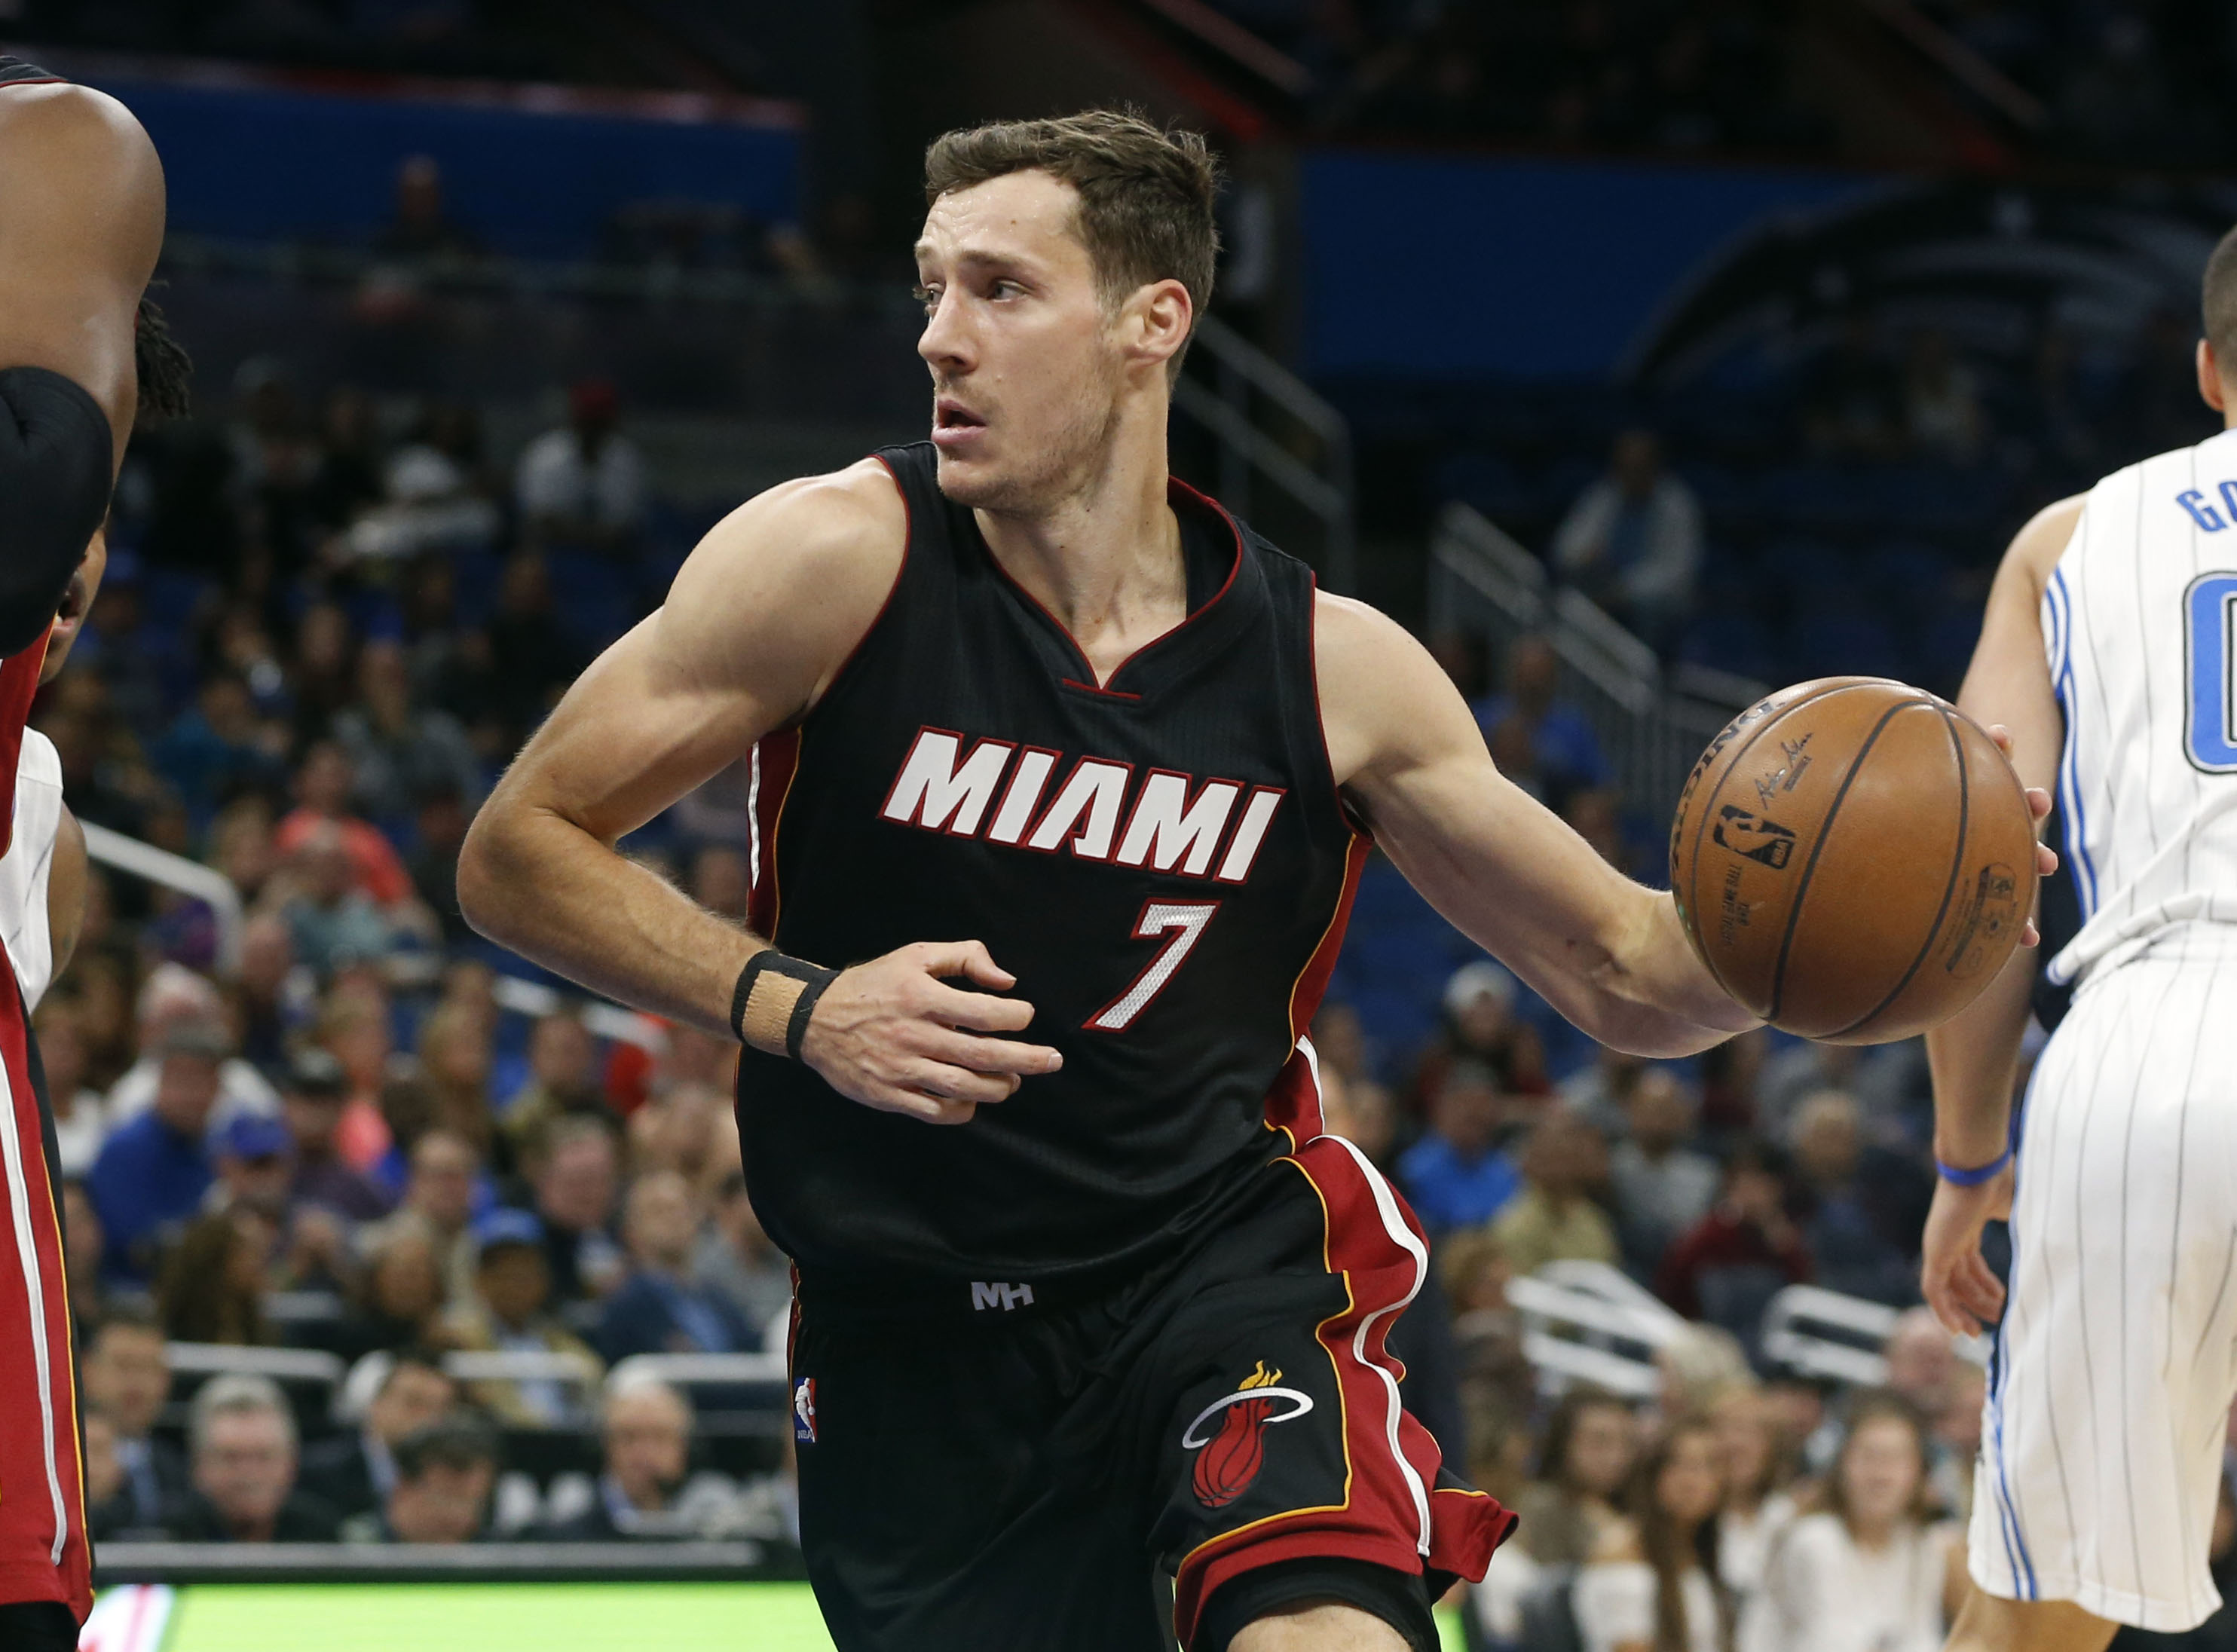 Miami heat updated news - Espn Nba Miami Heat News Nba Miami Heat News Update 9914103 Nba Miami Heat At